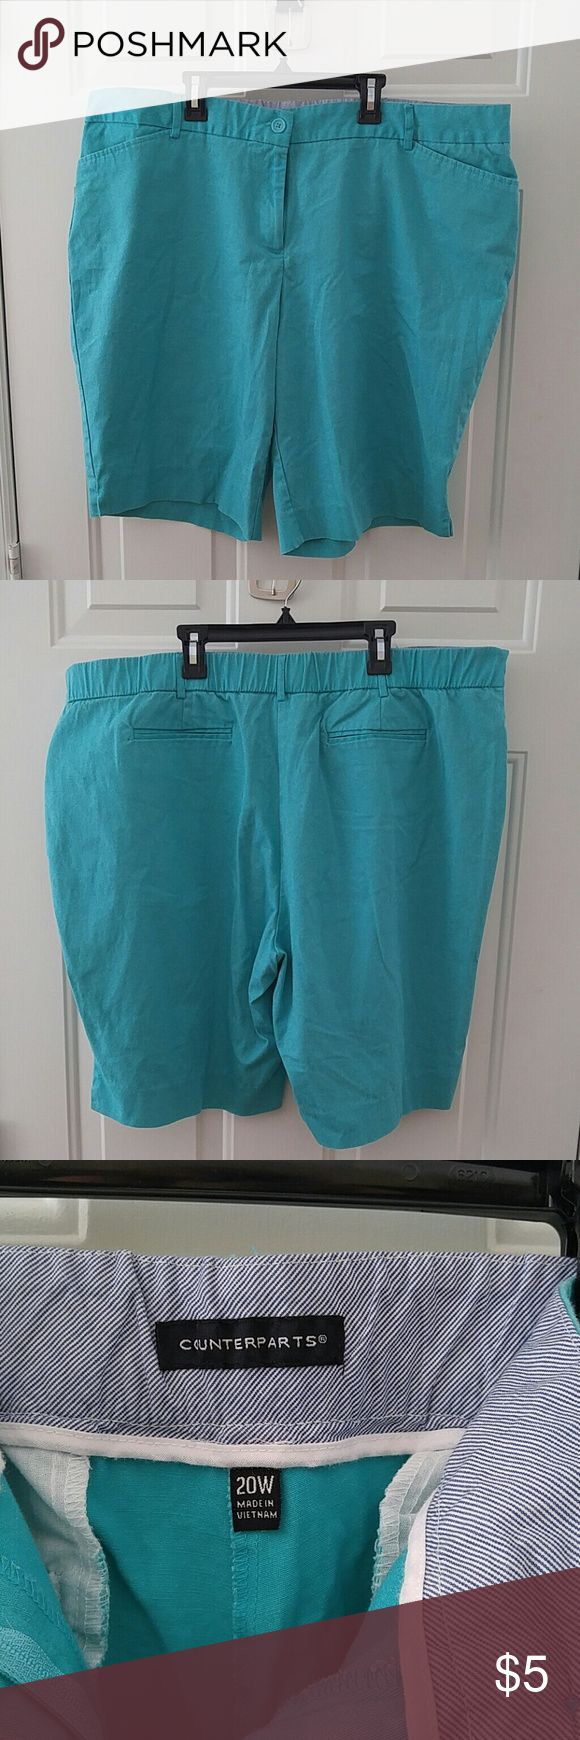 Counterparts Knee Length Aqua Shorts Knee Length shorts. Button and zip closure. 2 pockets in front and 2 in back. Size 20W Counterparts Shorts Bermudas